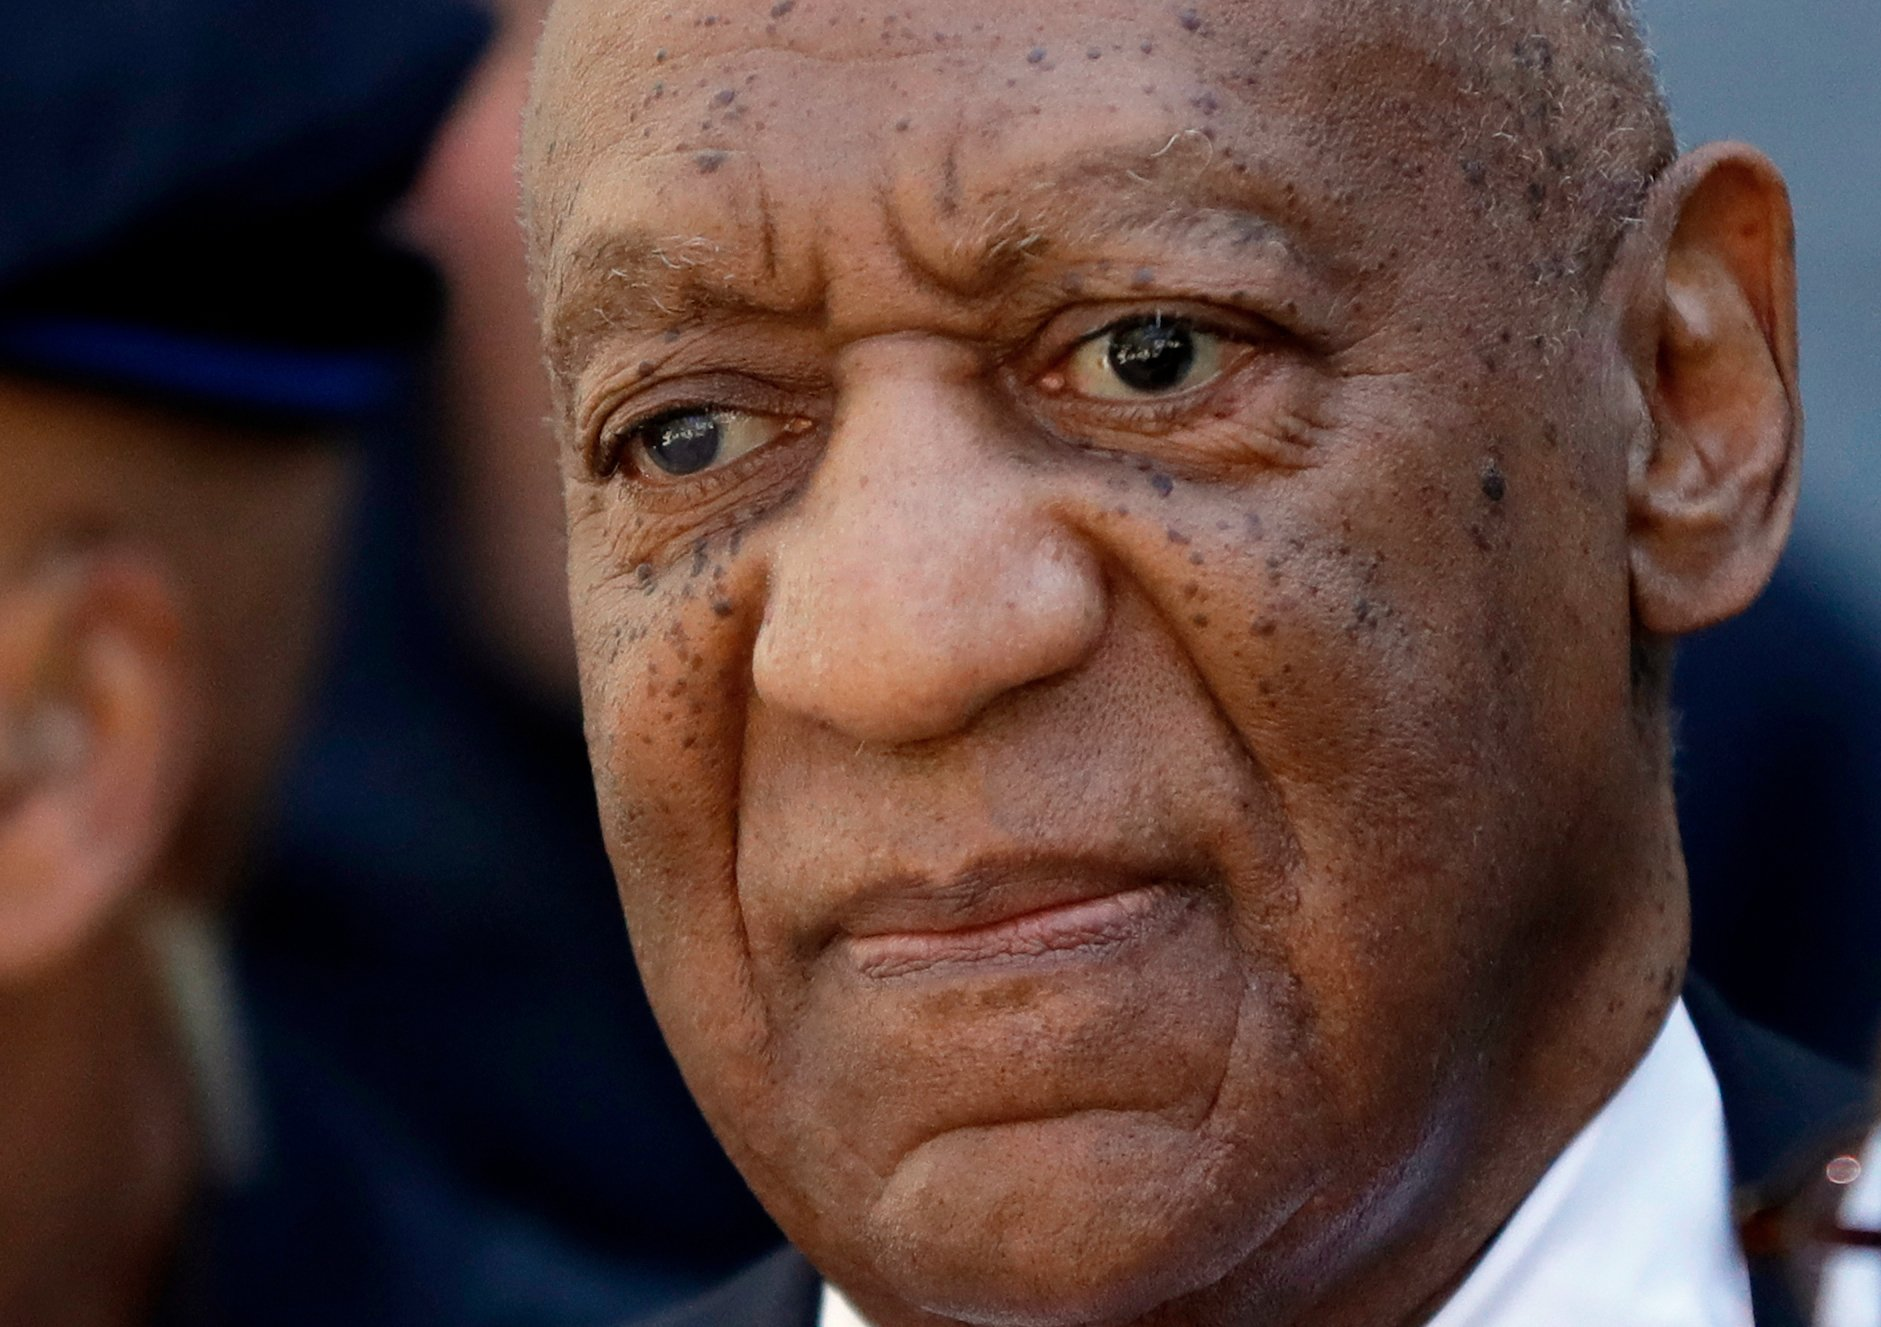 Cosby could spend rest of life in prison for sex assault